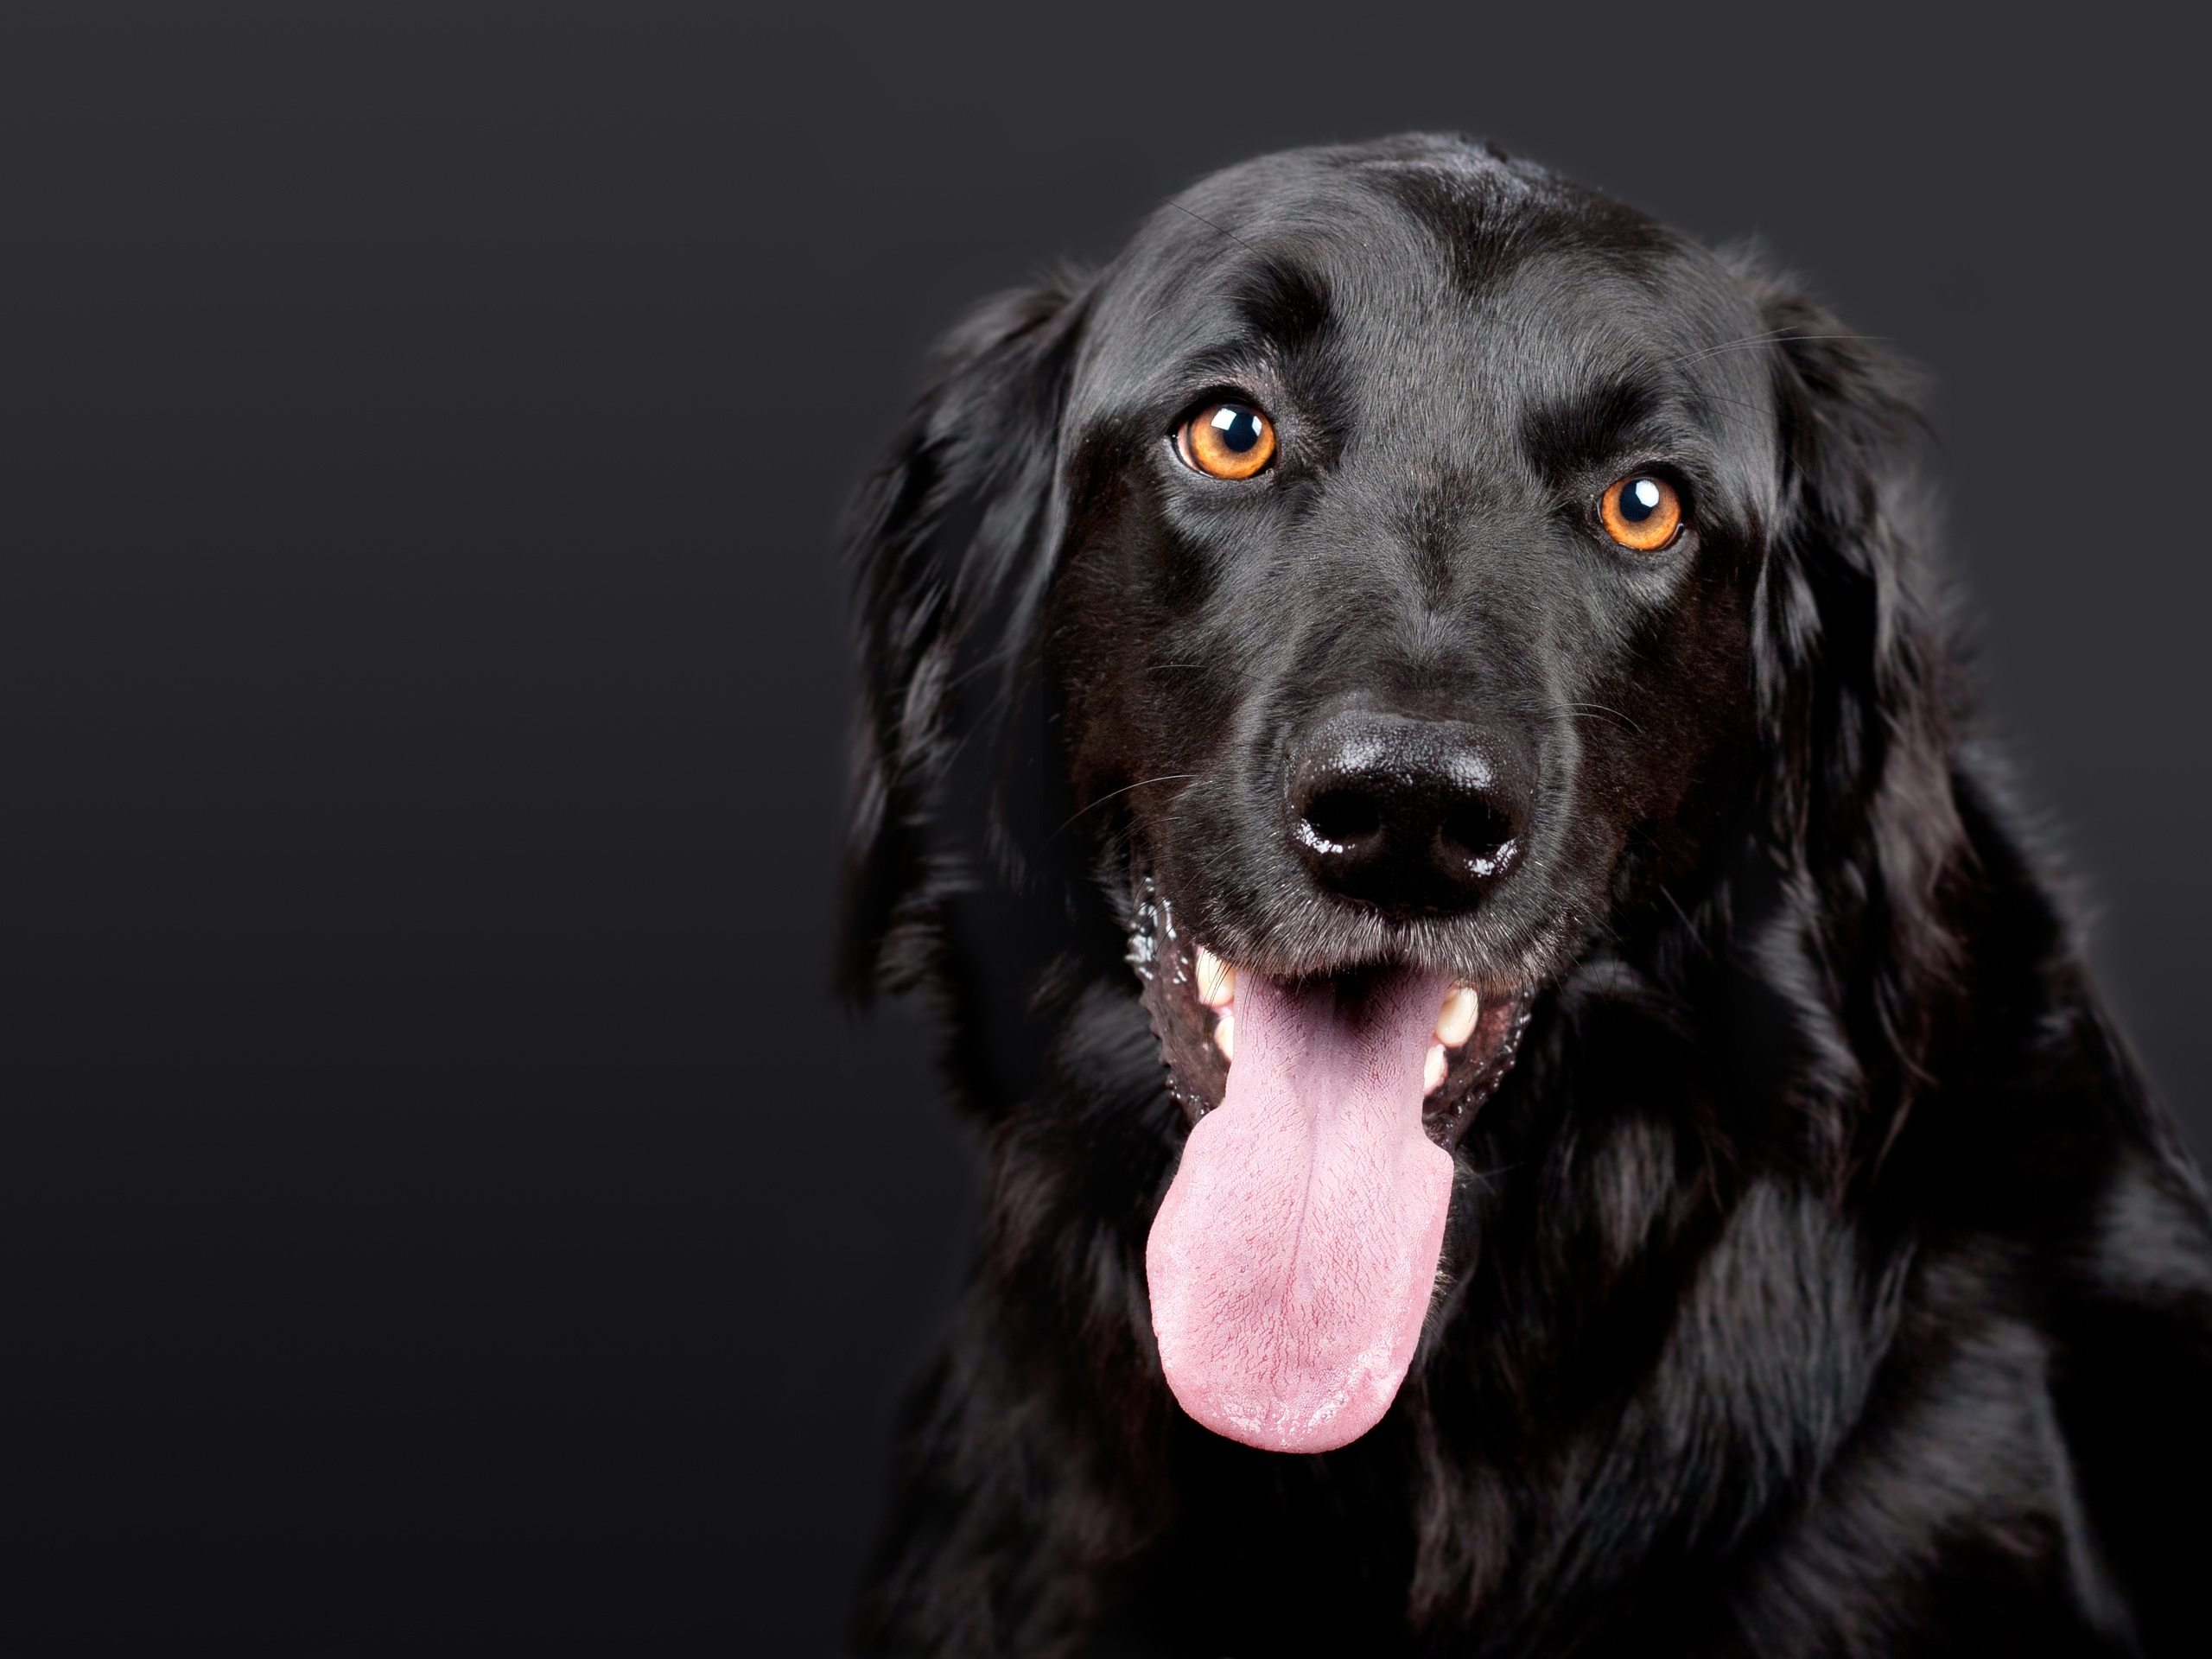 Black Dog Wallpapers HD Download 2560x1920